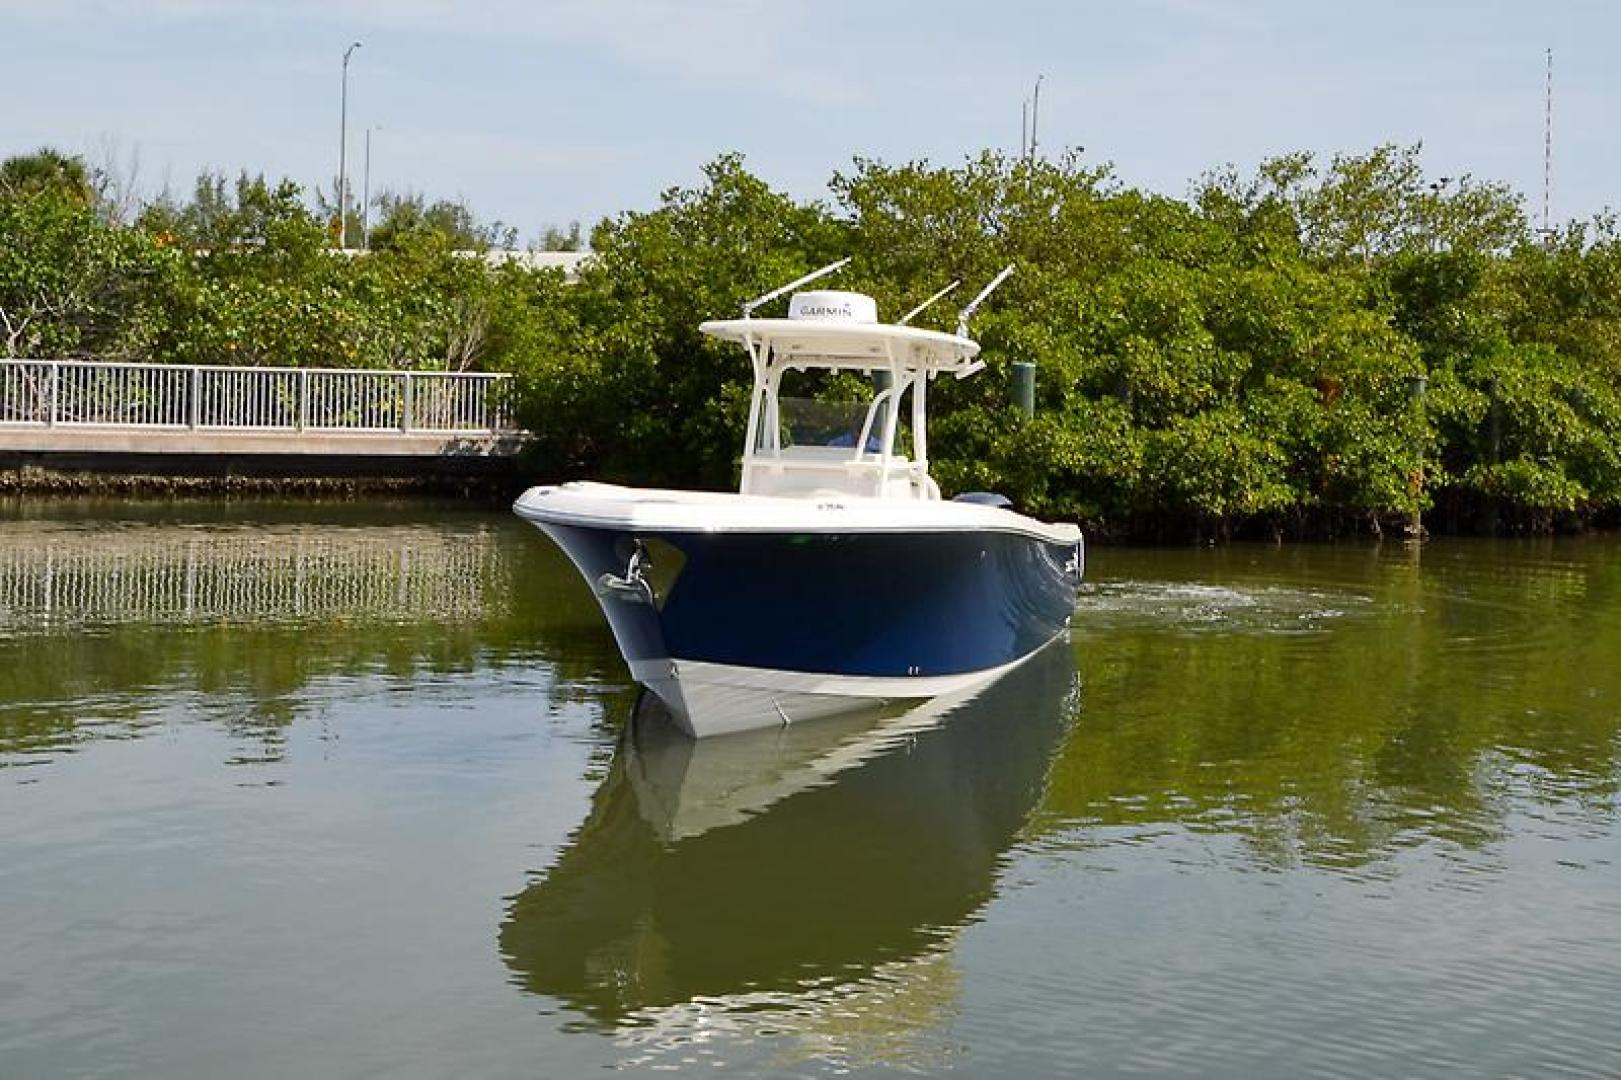 2014 Sailfish 320 cc-8.jpg